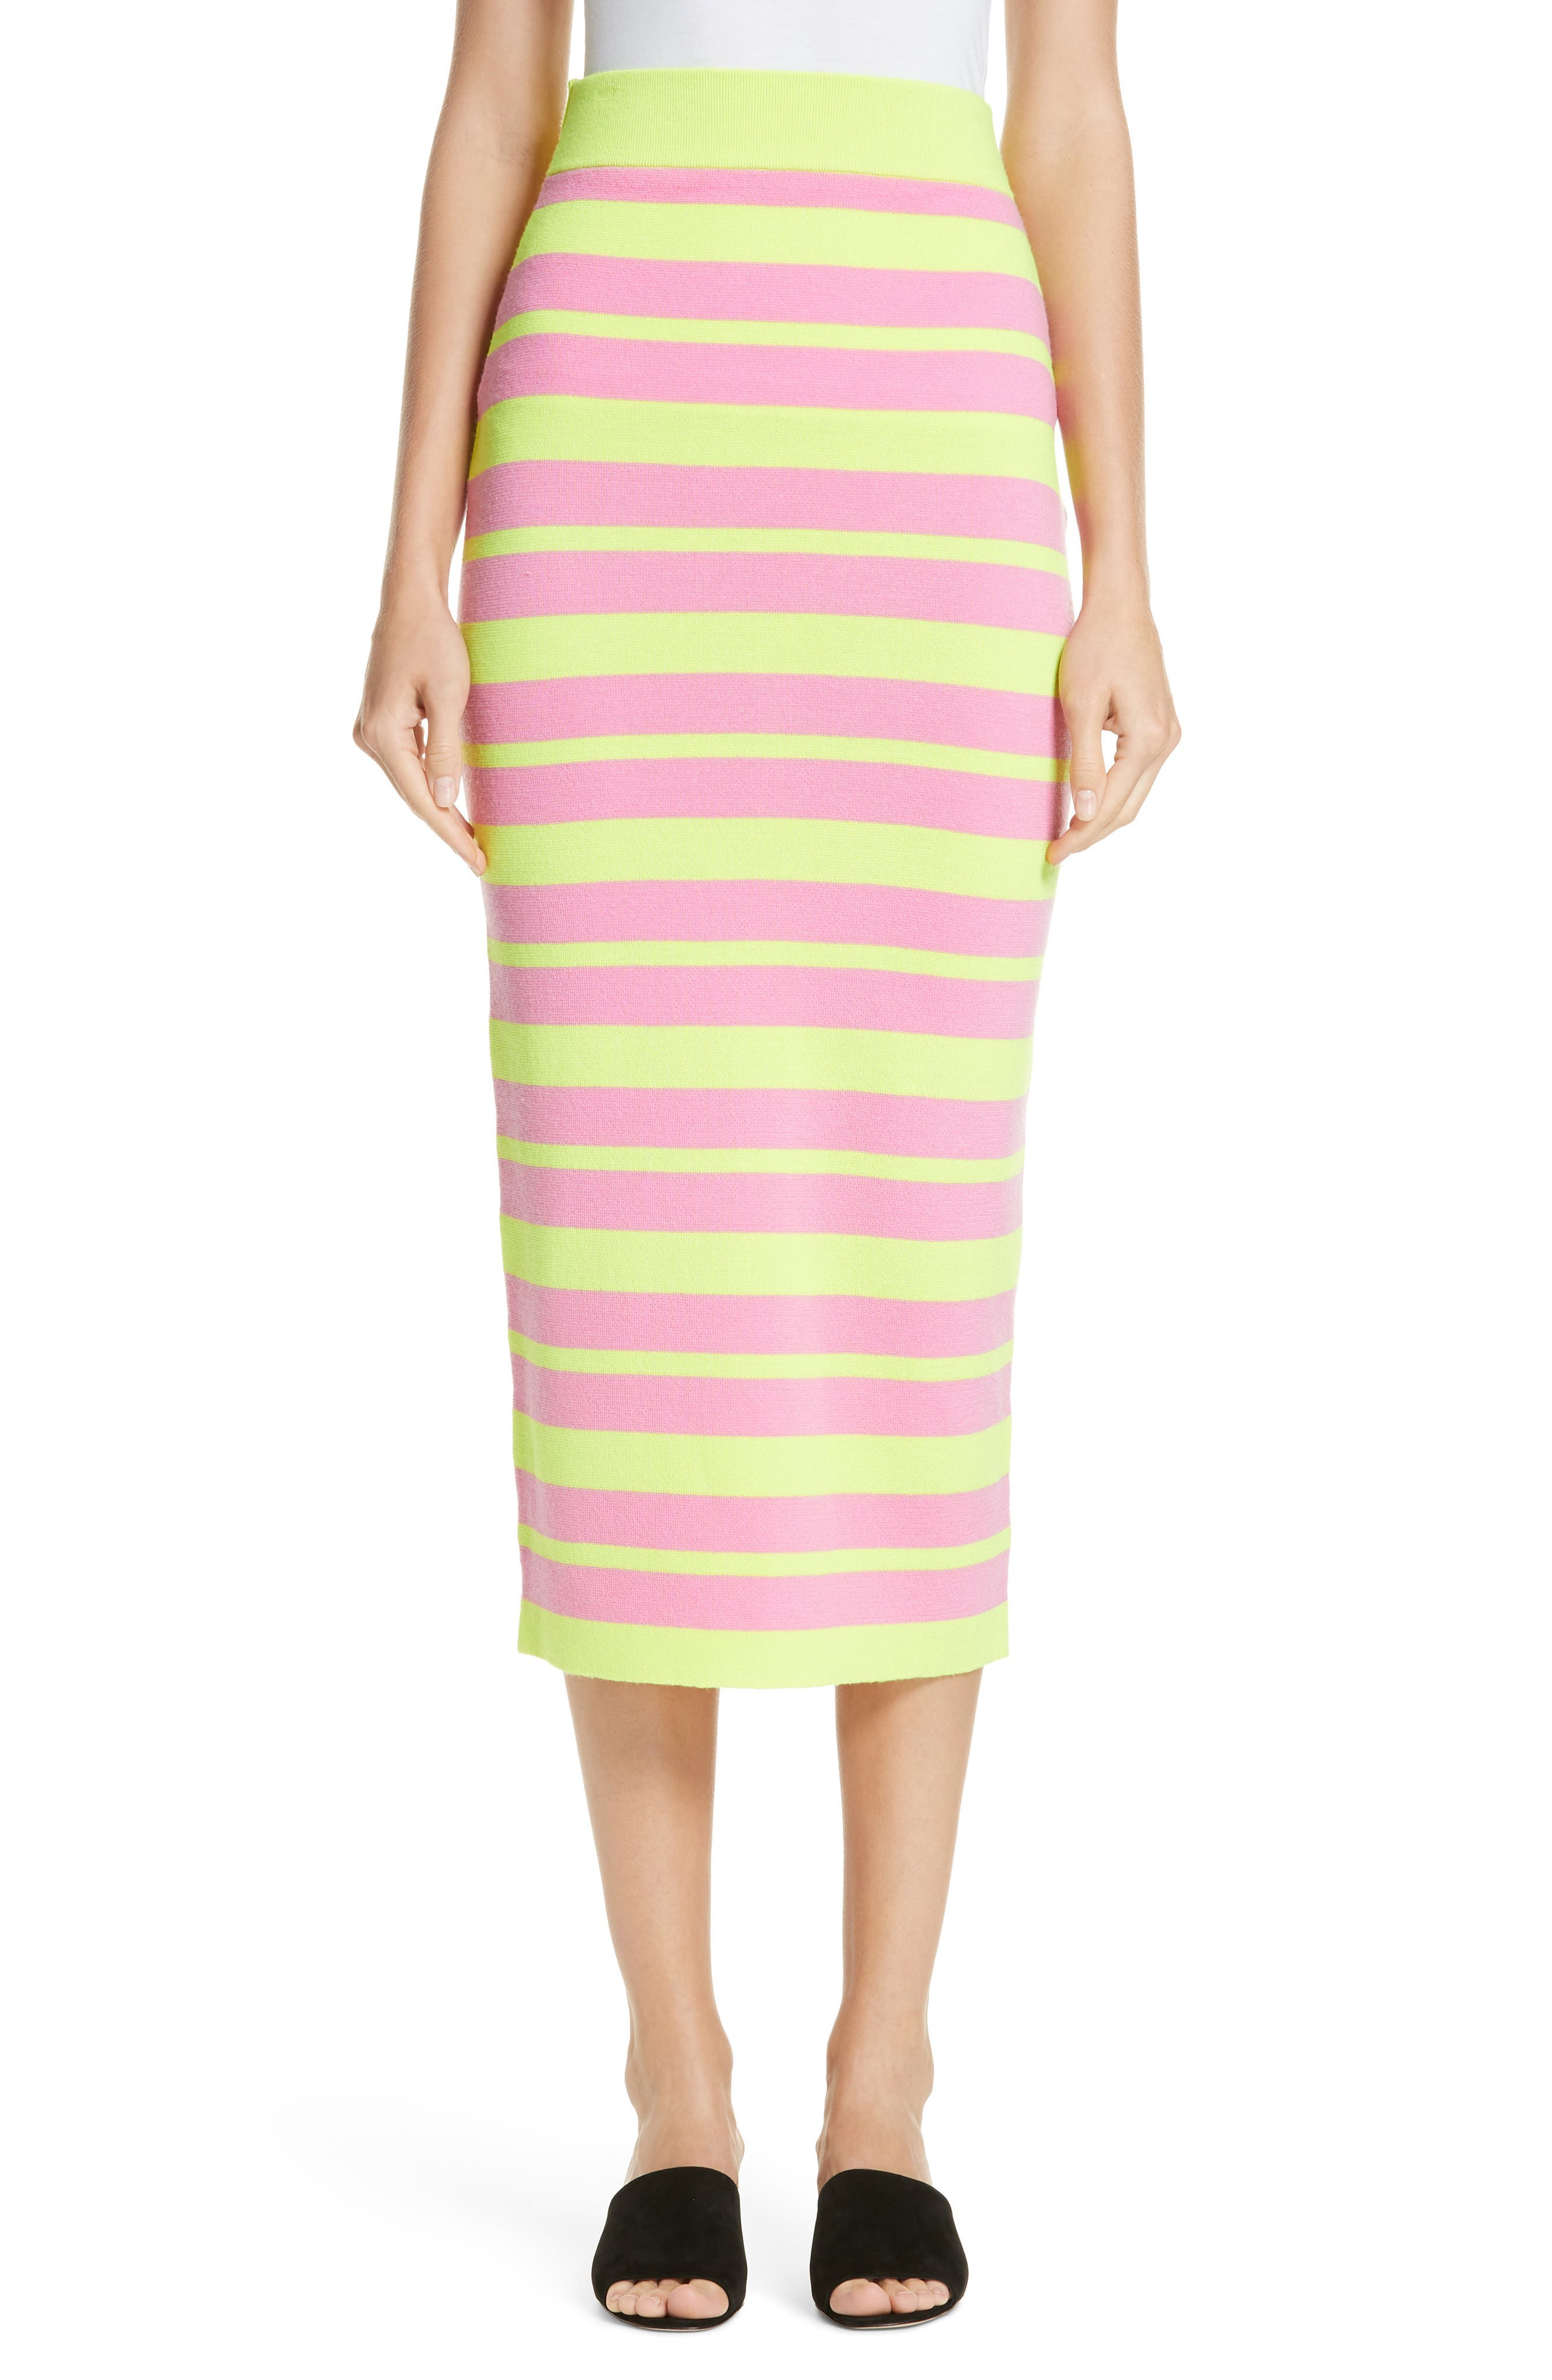 VICTOR GLEMAUD Stripe Knit Maxi Skirt in Lime And Pink Combo